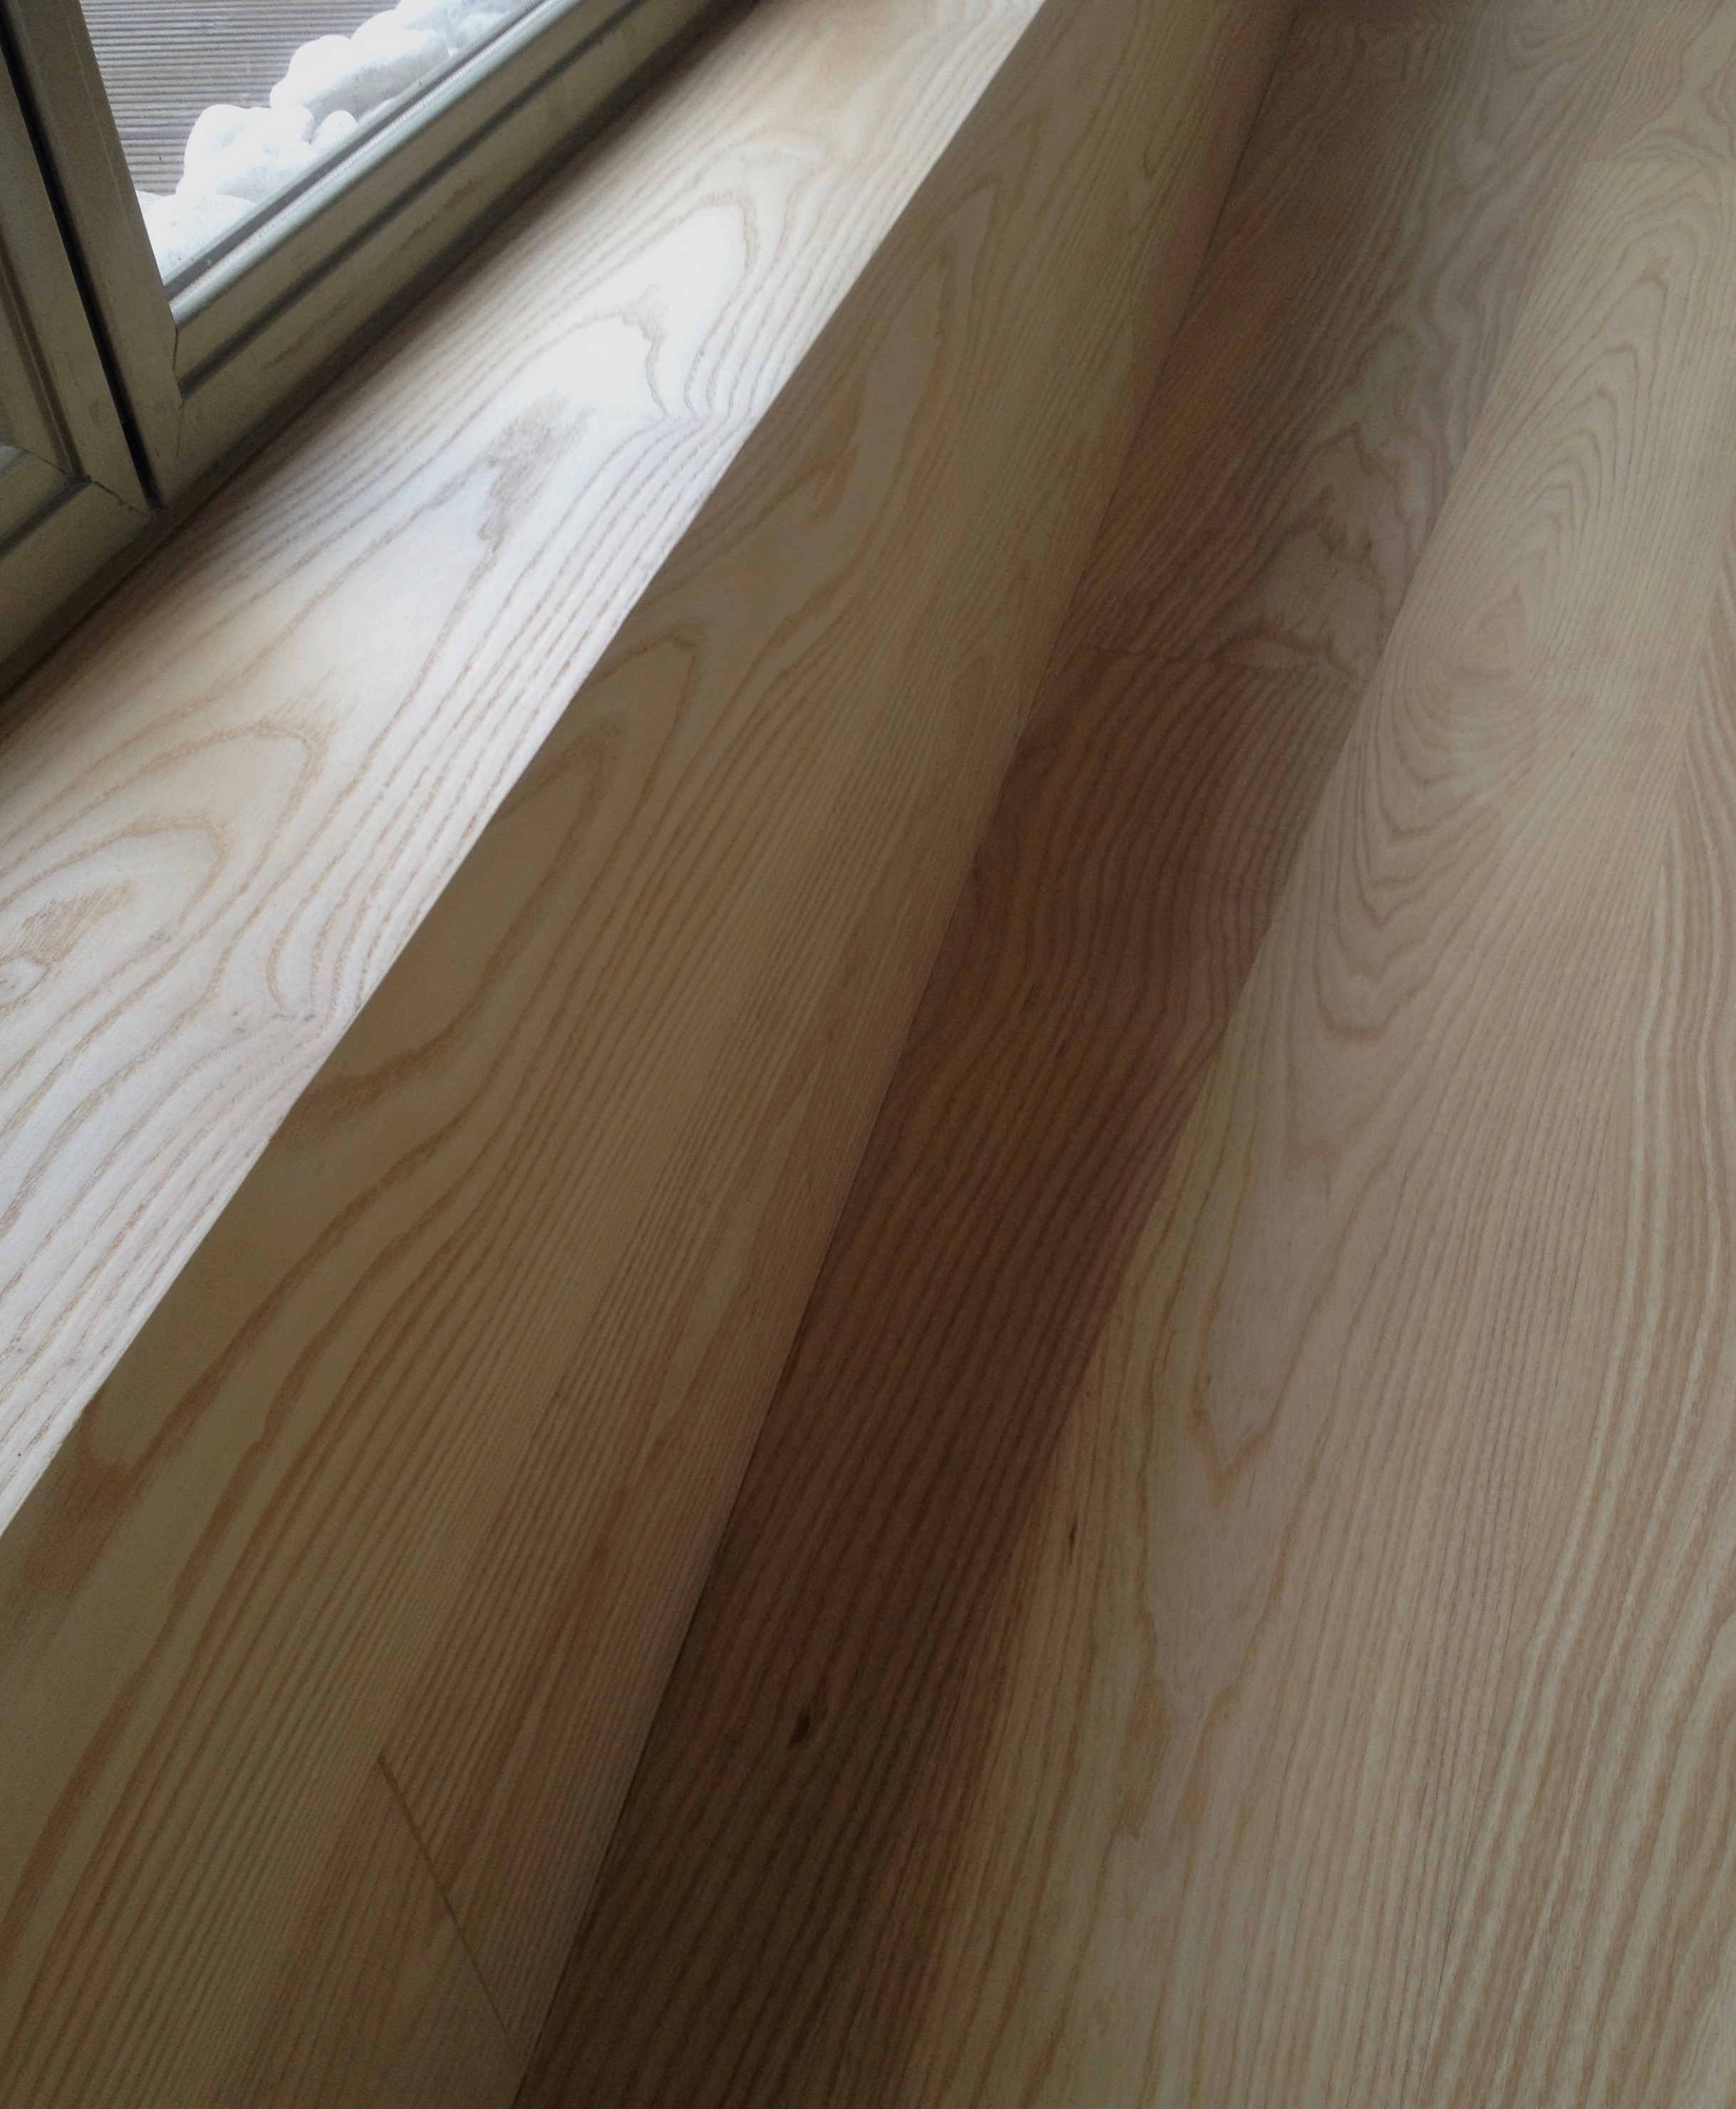 Ash floor treated with extreme matt finish